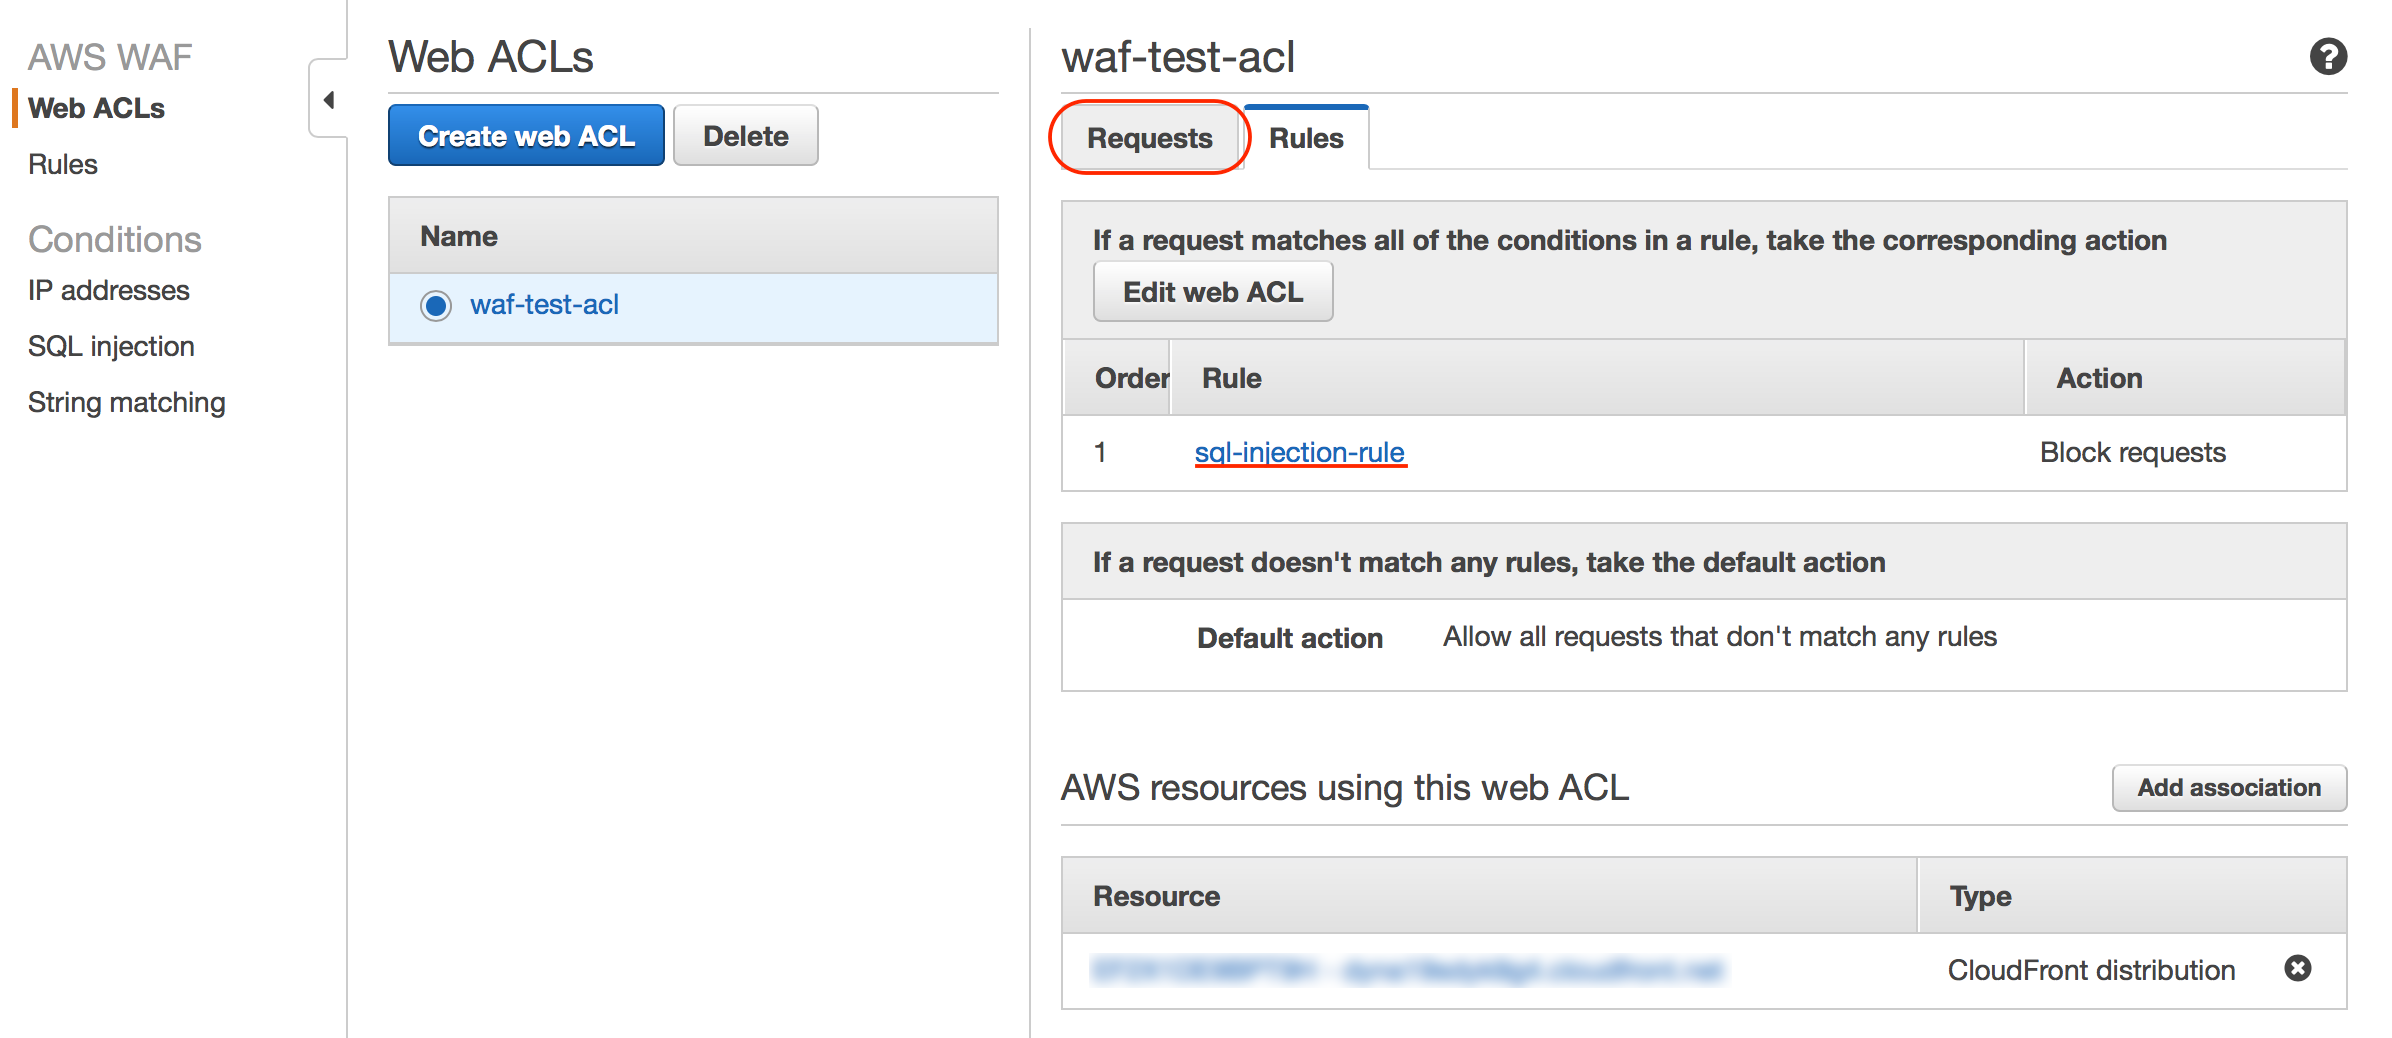 aws-waf_sql-injection_2015120412-1.png